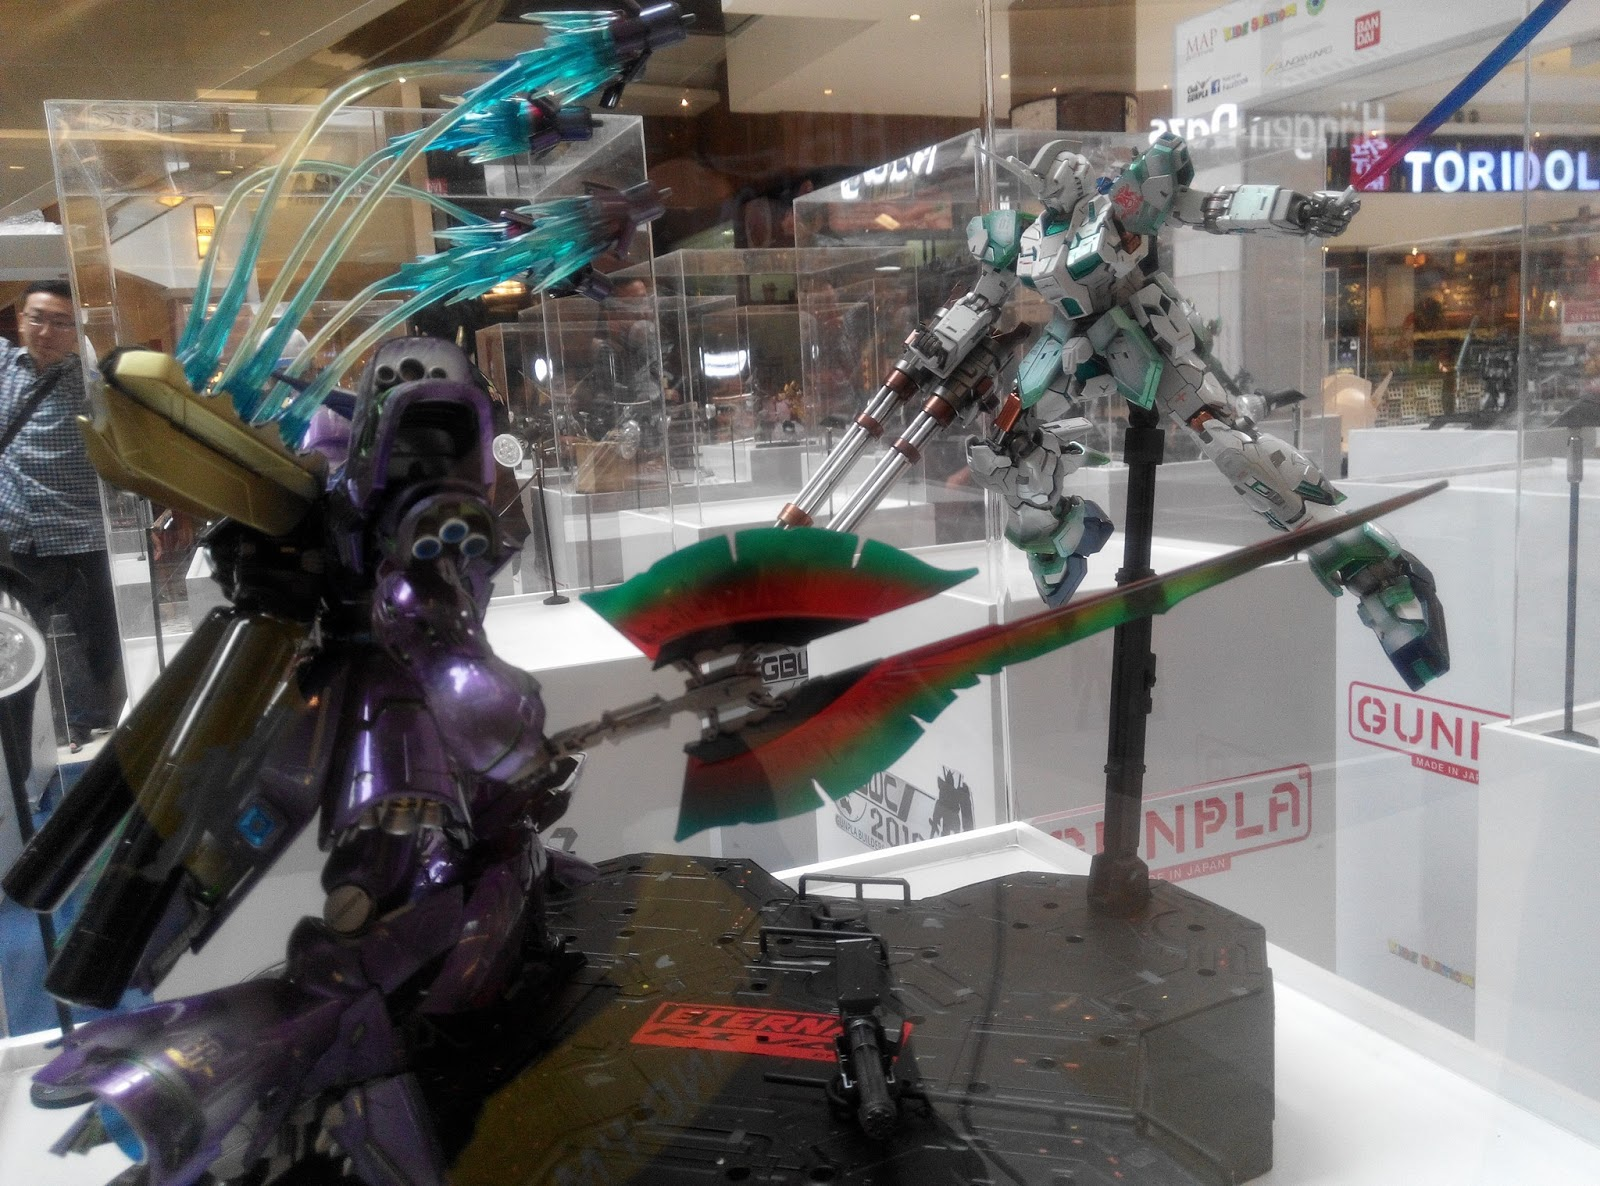 GunPla Builders World Cup [GBWC] 2016 Indonesia Image Gallery by 703 Workshop